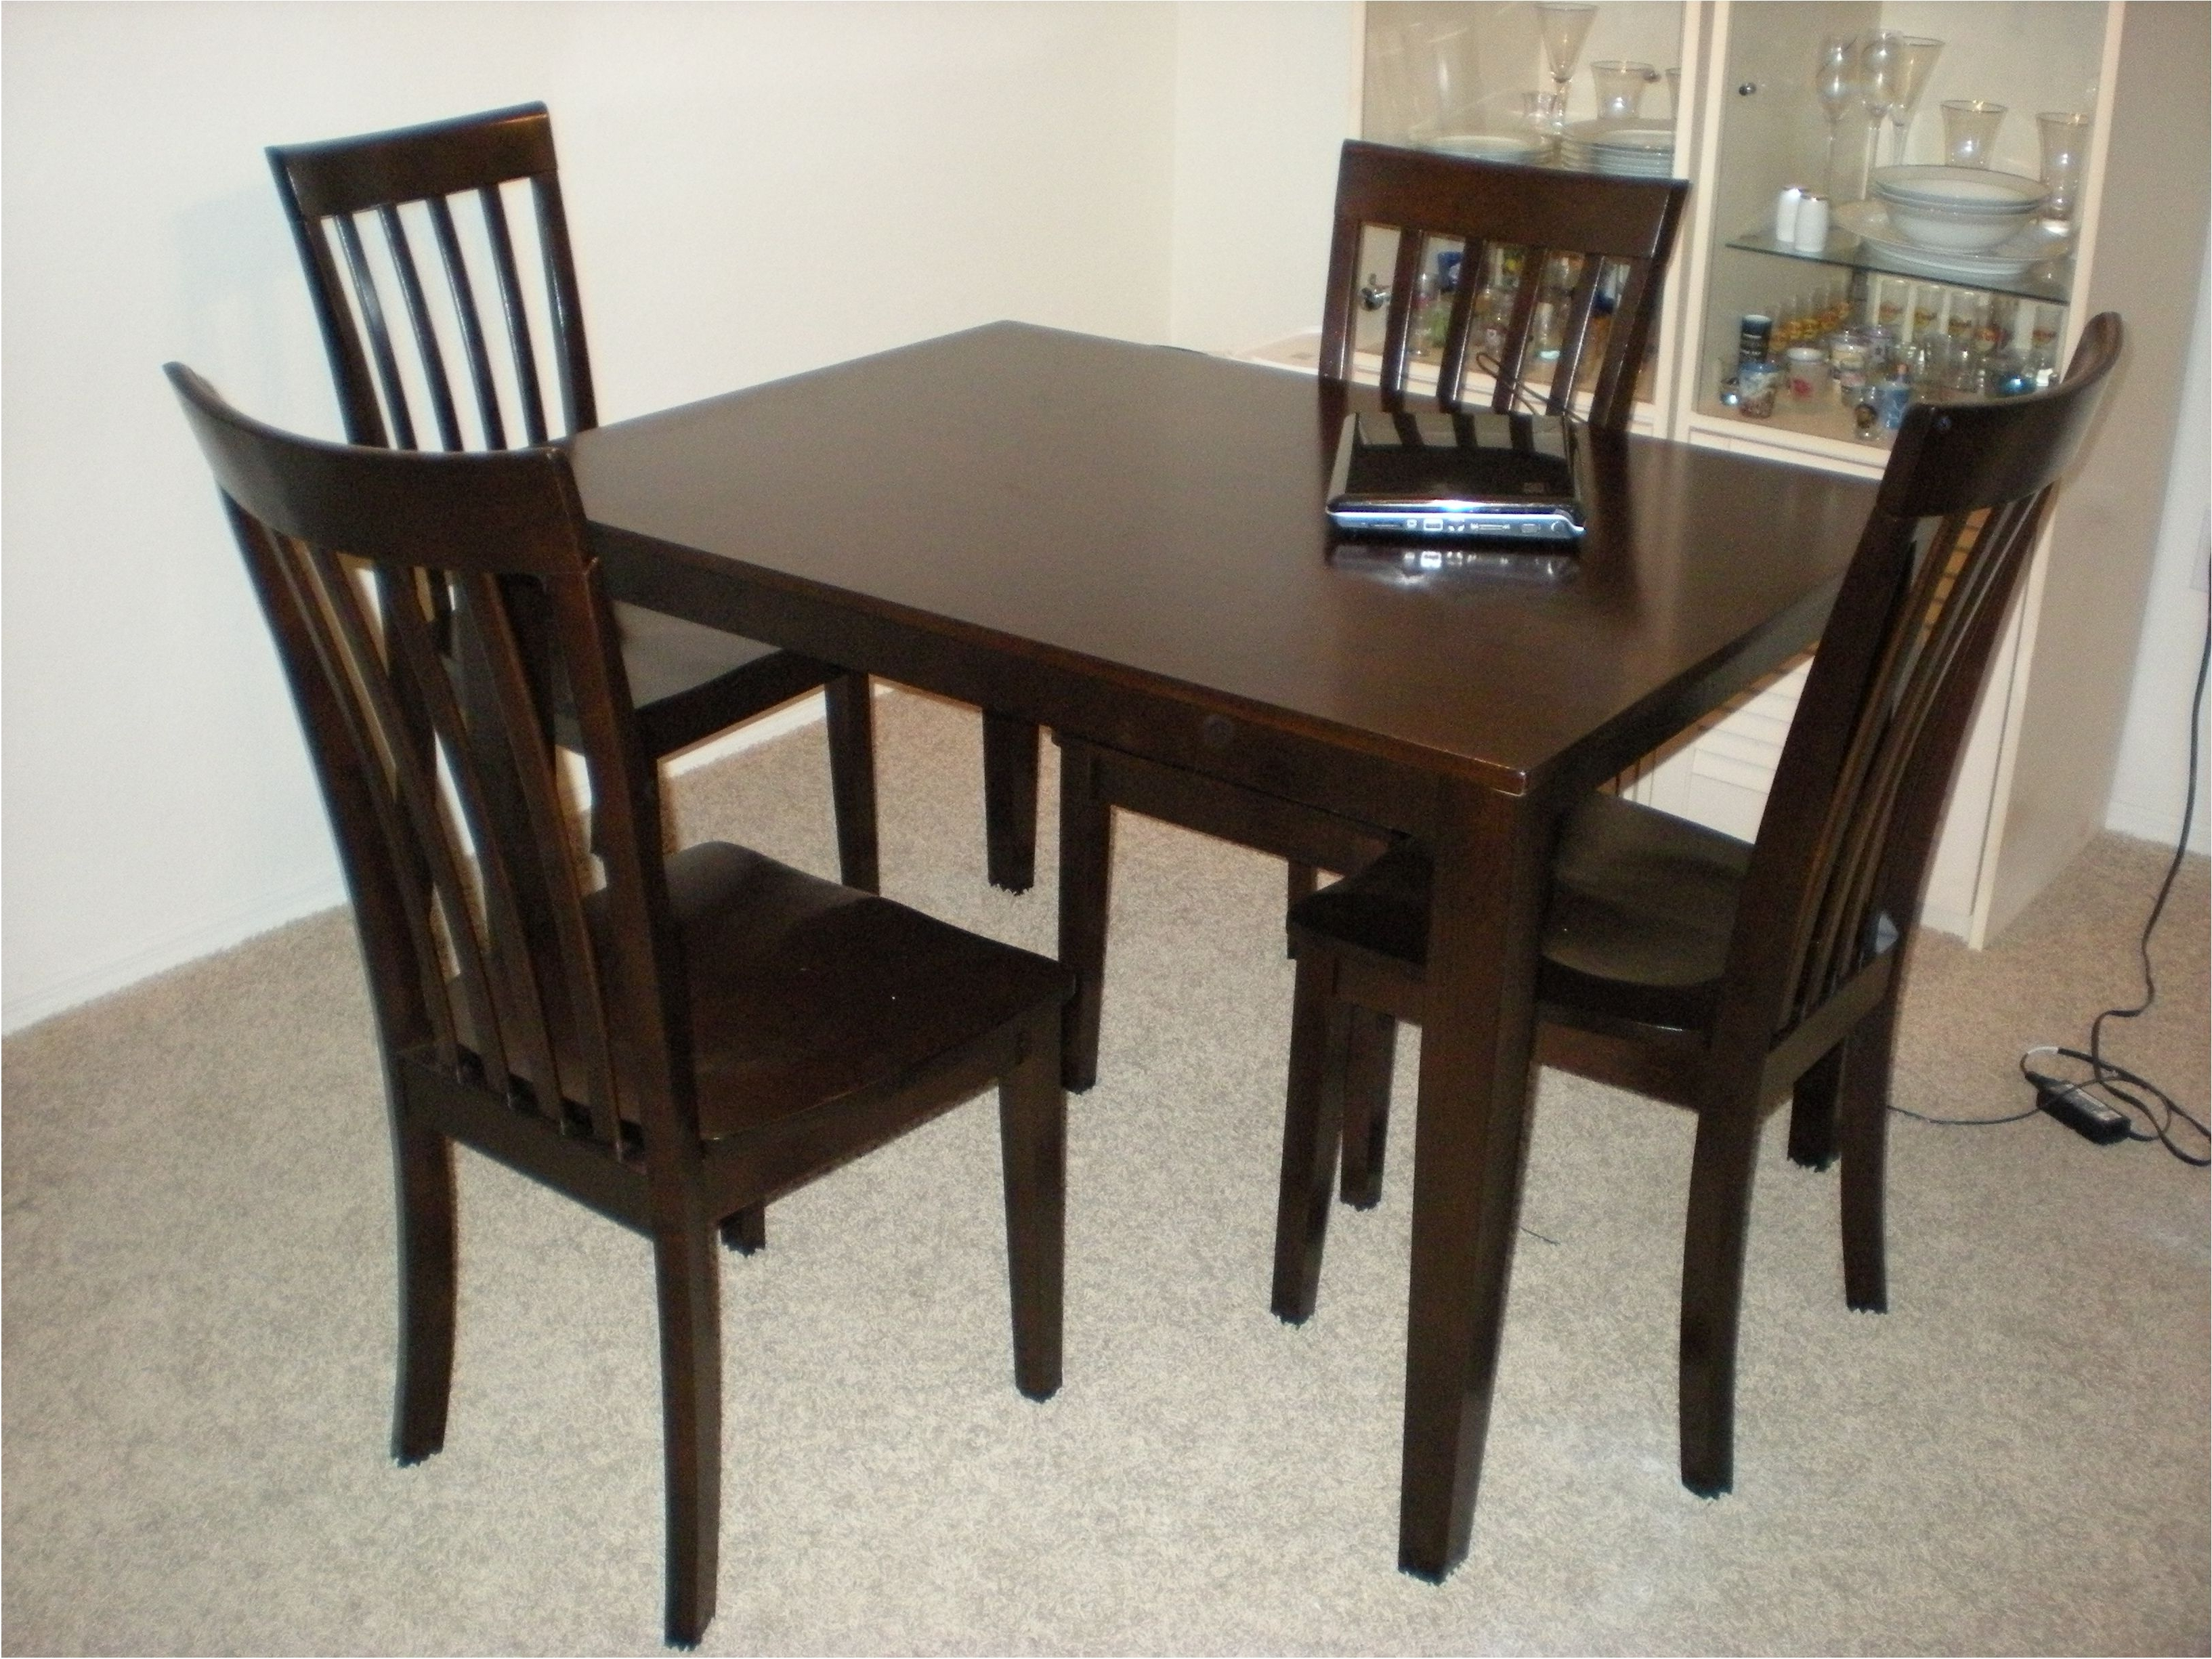 Small Dark Wood Dining Tables Intended For 2018 Wonderfull Furniture Green Wooden Small Kitchen Chair Black Dining (View 16 of 25)